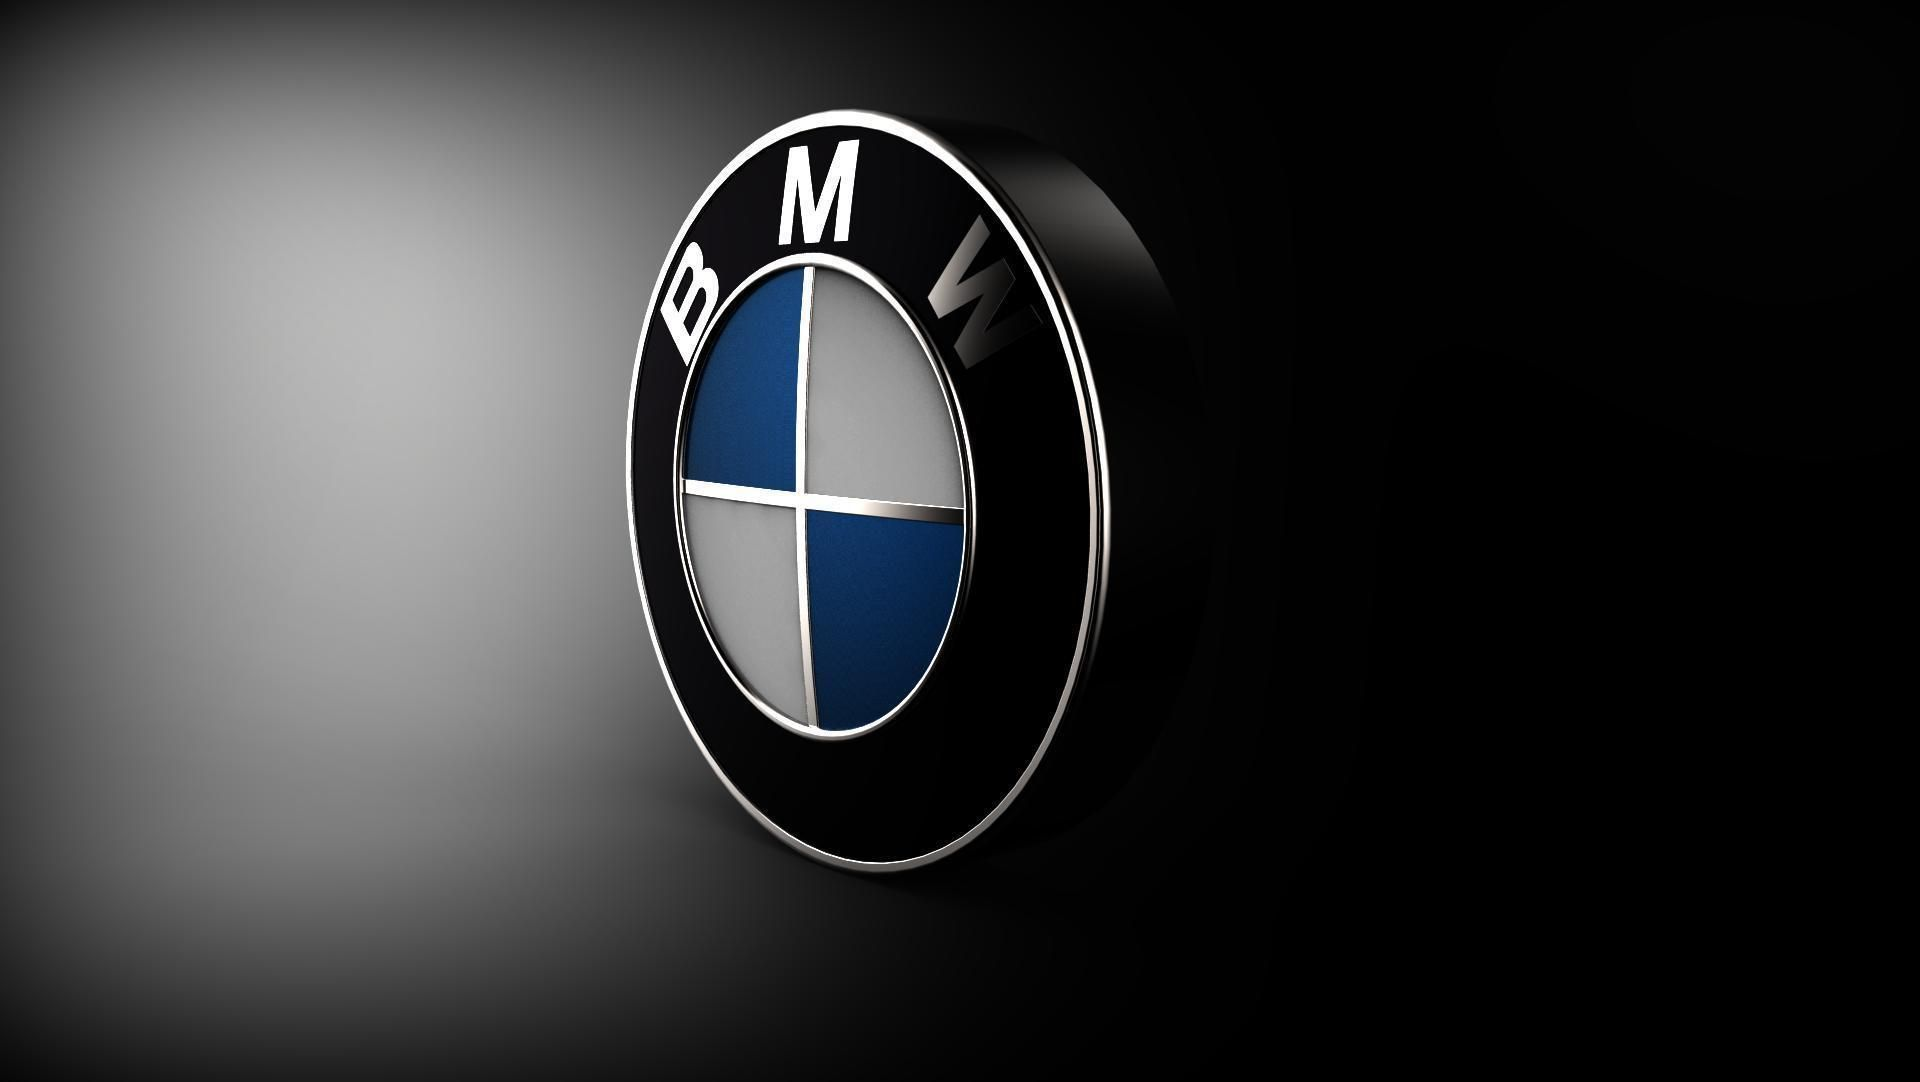 Bmw Logo 3d Modelnot Decal 3d Model Obj Stl Sldprt